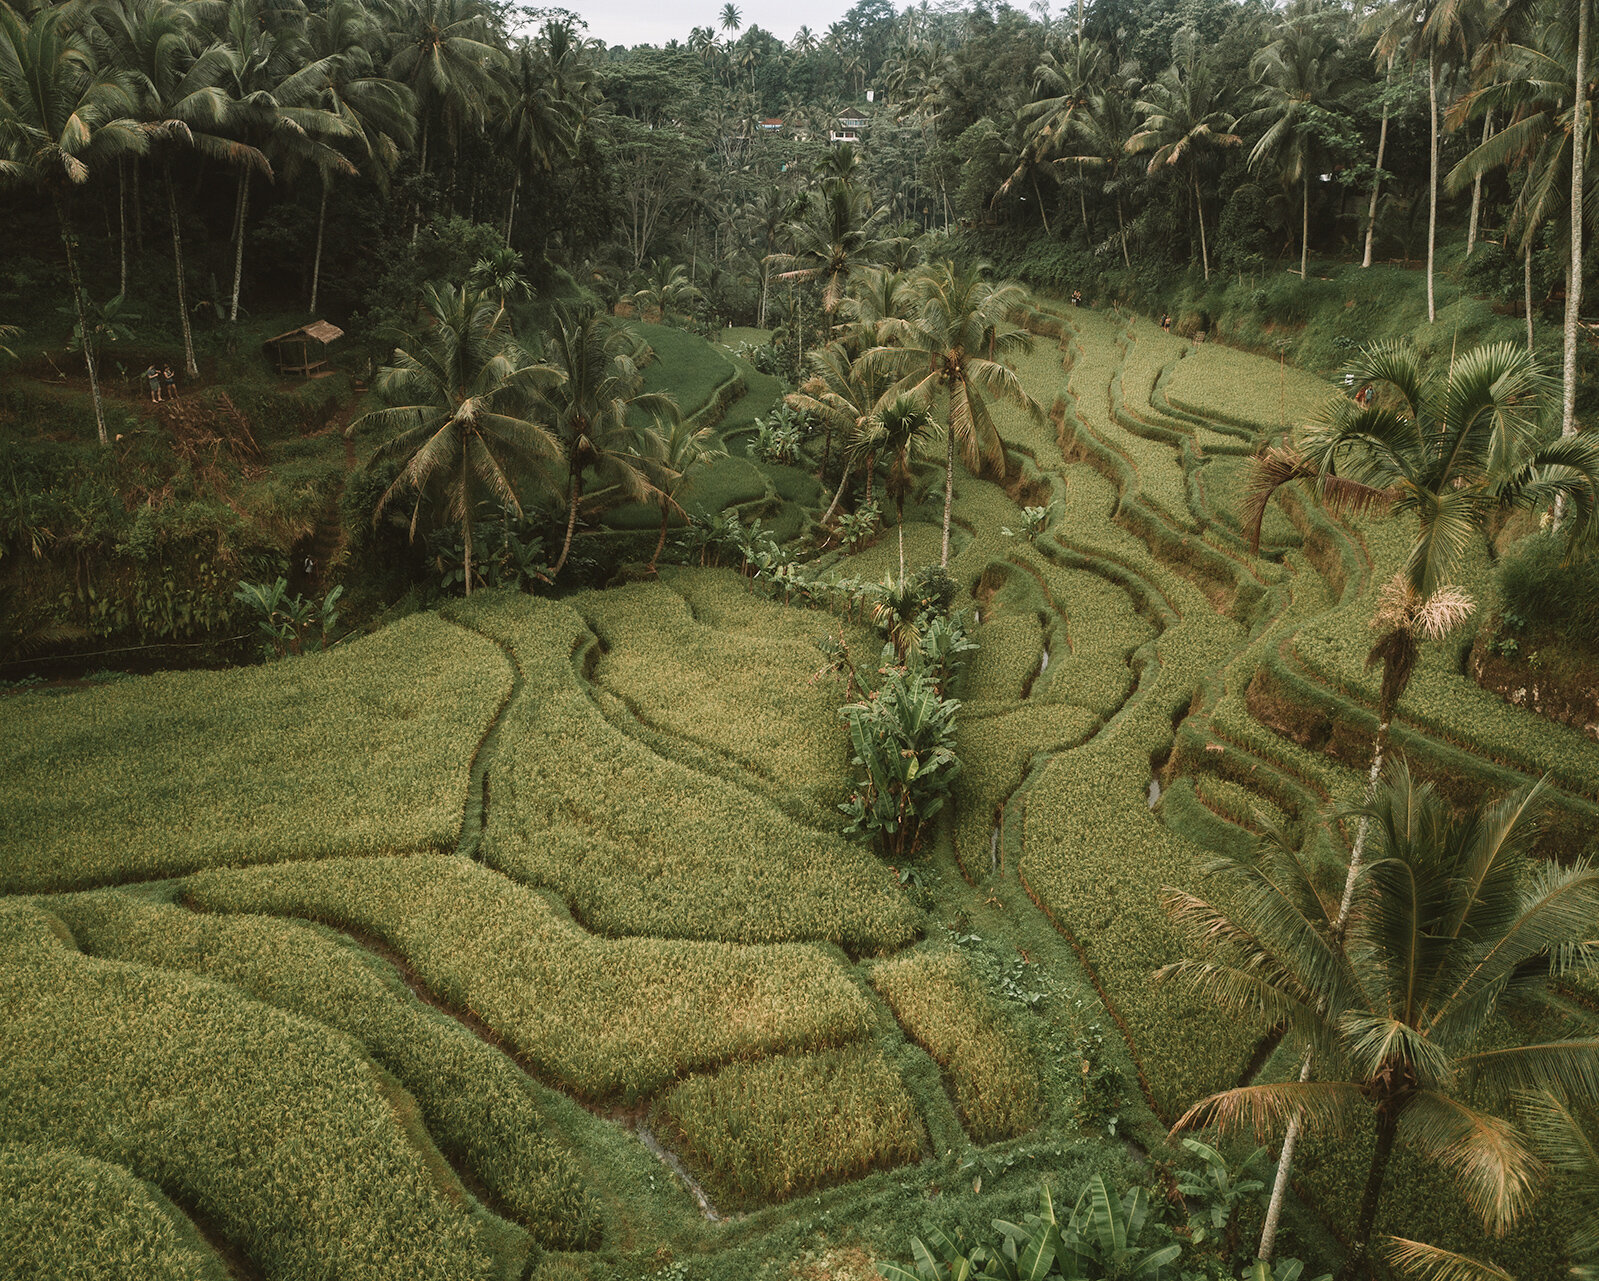 Tegallalang Rice Terraces Ubud aerial view, best place to photograph Bali travel guide